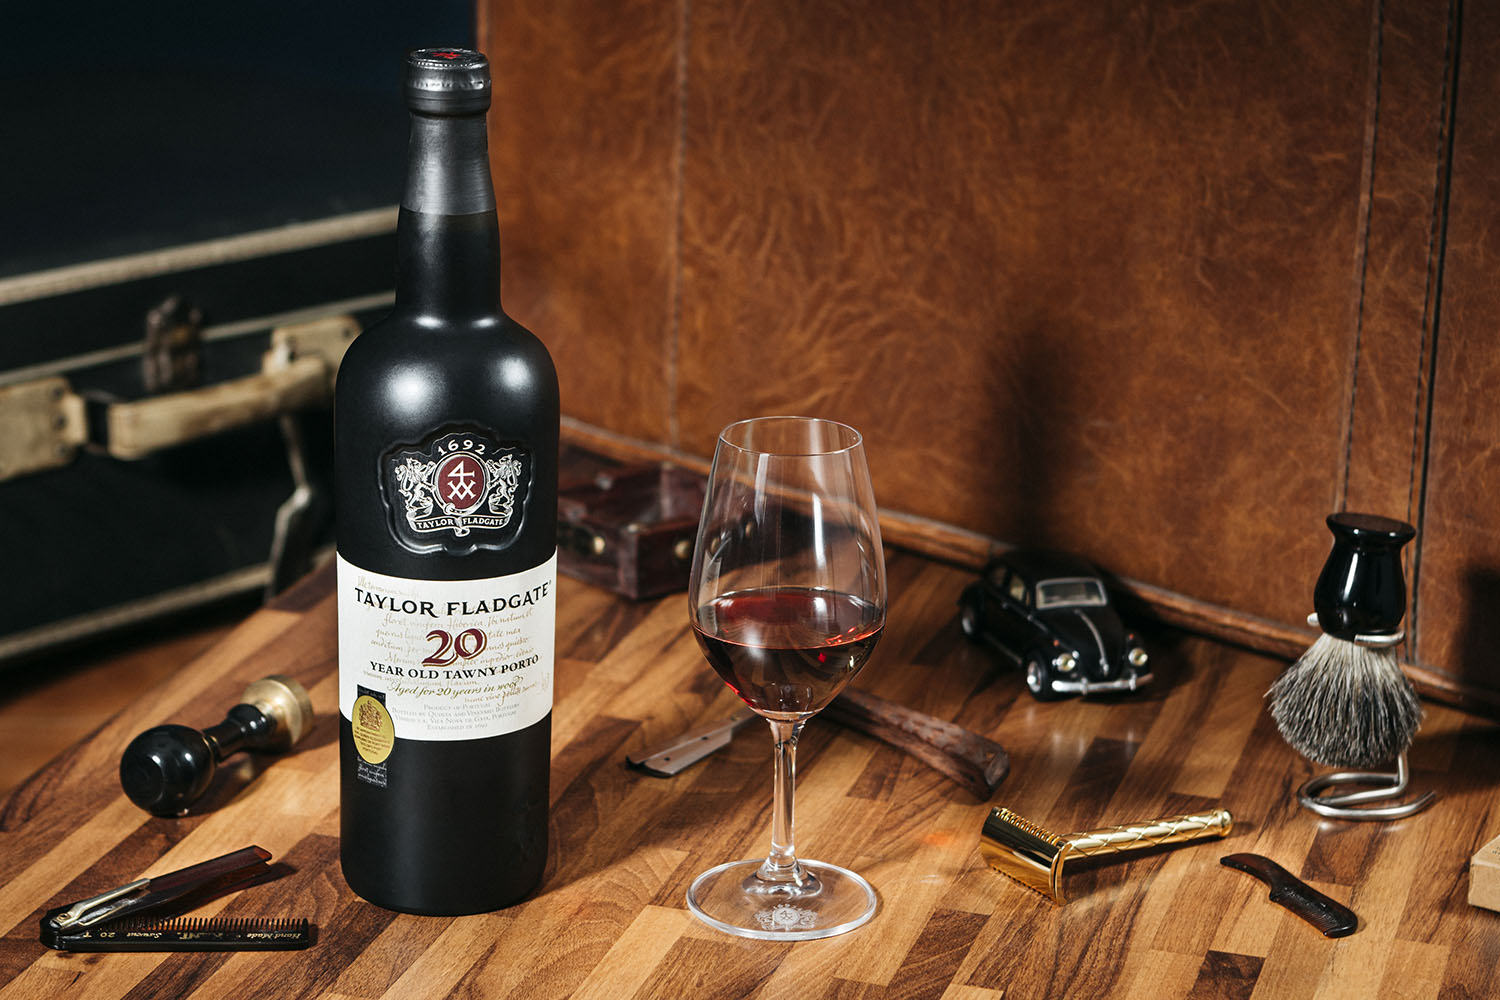 a glass of taylor fladgate port next to a bottle